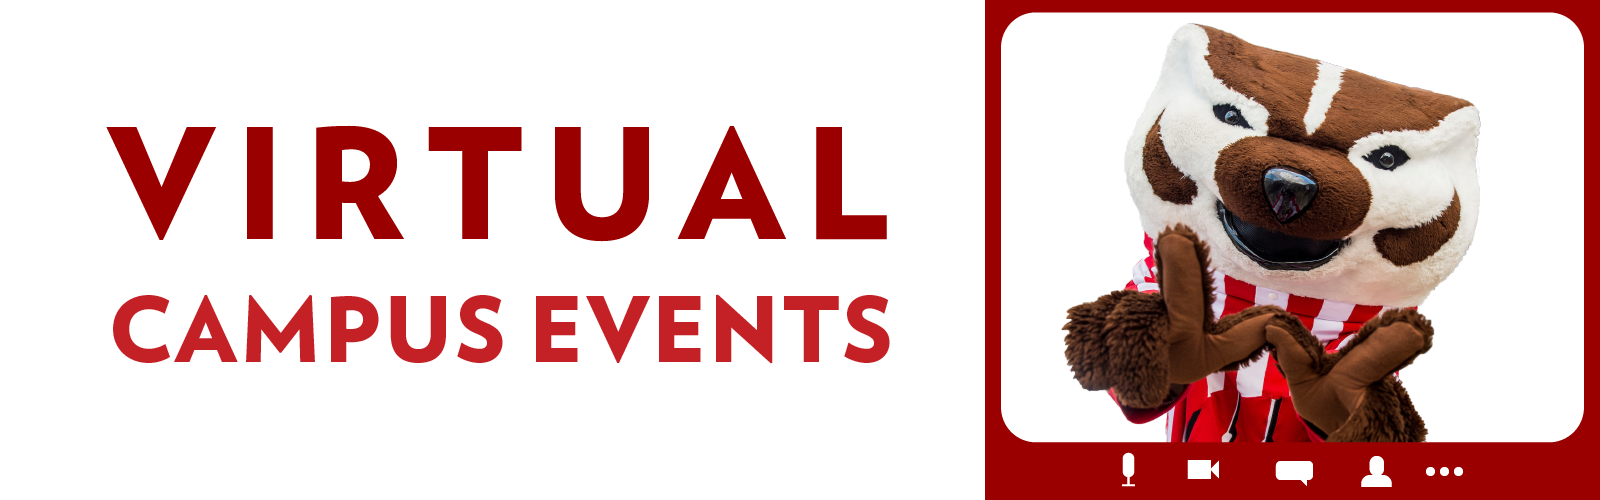 Virtual Campus events on Visit Bucky